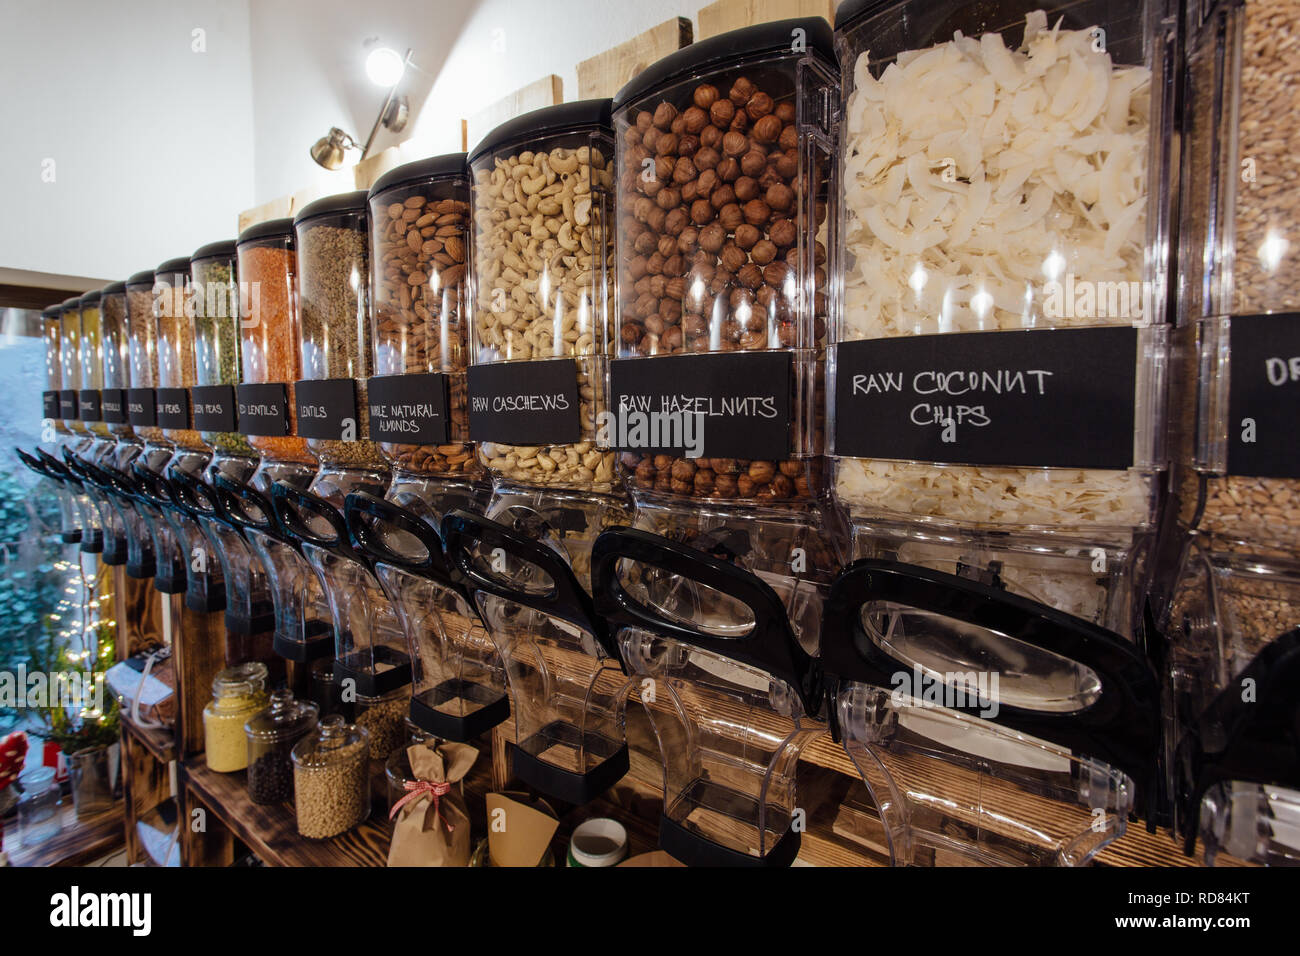 Side view of raw food products displayed in grocery store. Zero waste shopping - shelf with glass jars full of nuts and seeds in organic shop. - Stock Image